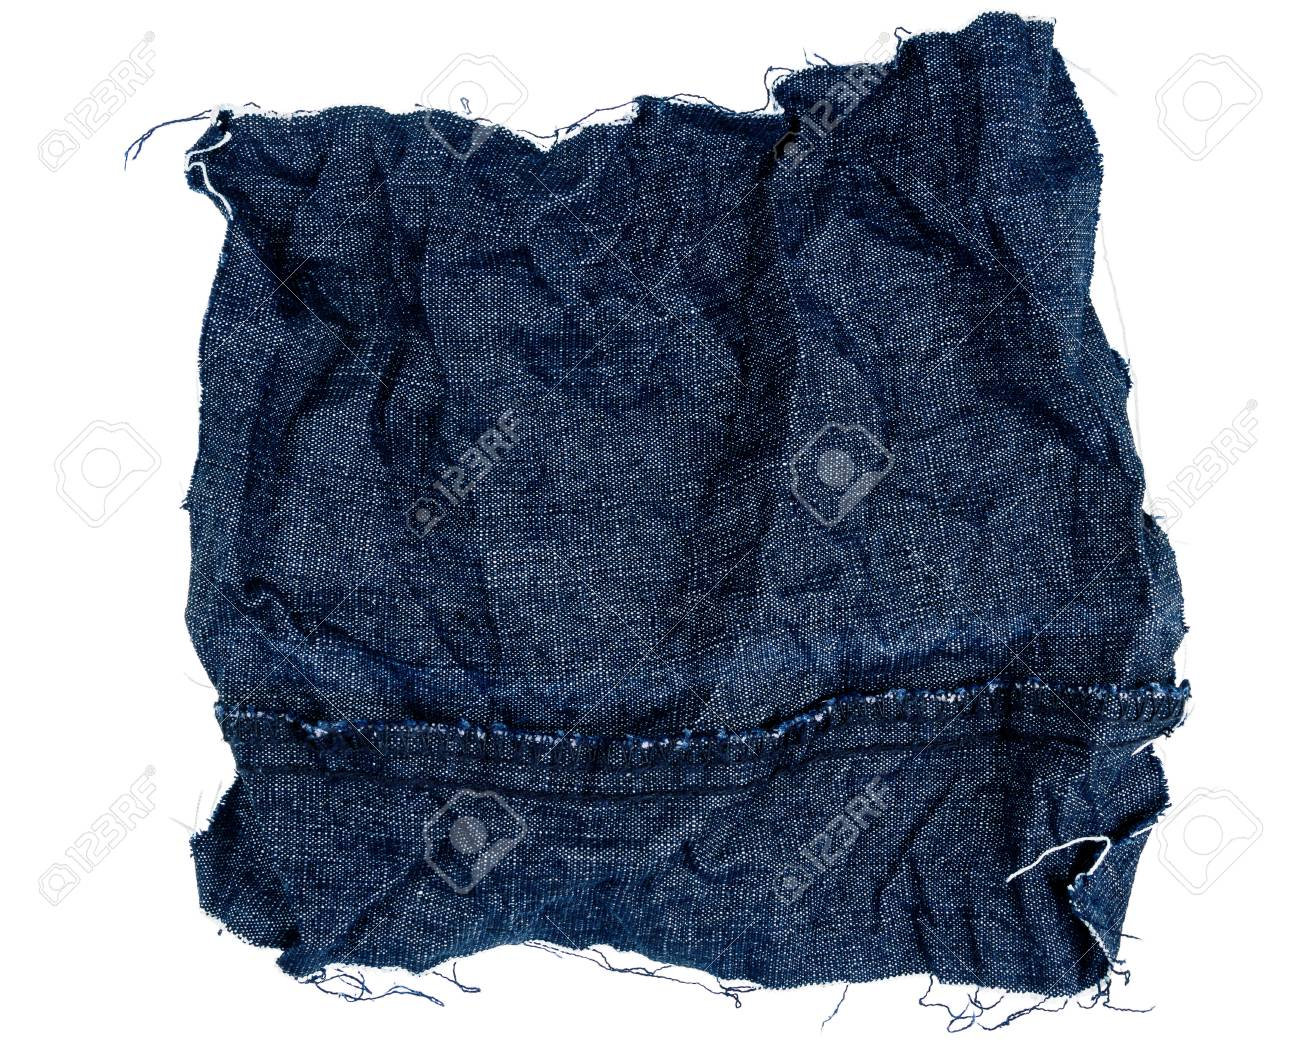 69f920f60 Piece of crumpled blue jeans fabric isolated on white background...